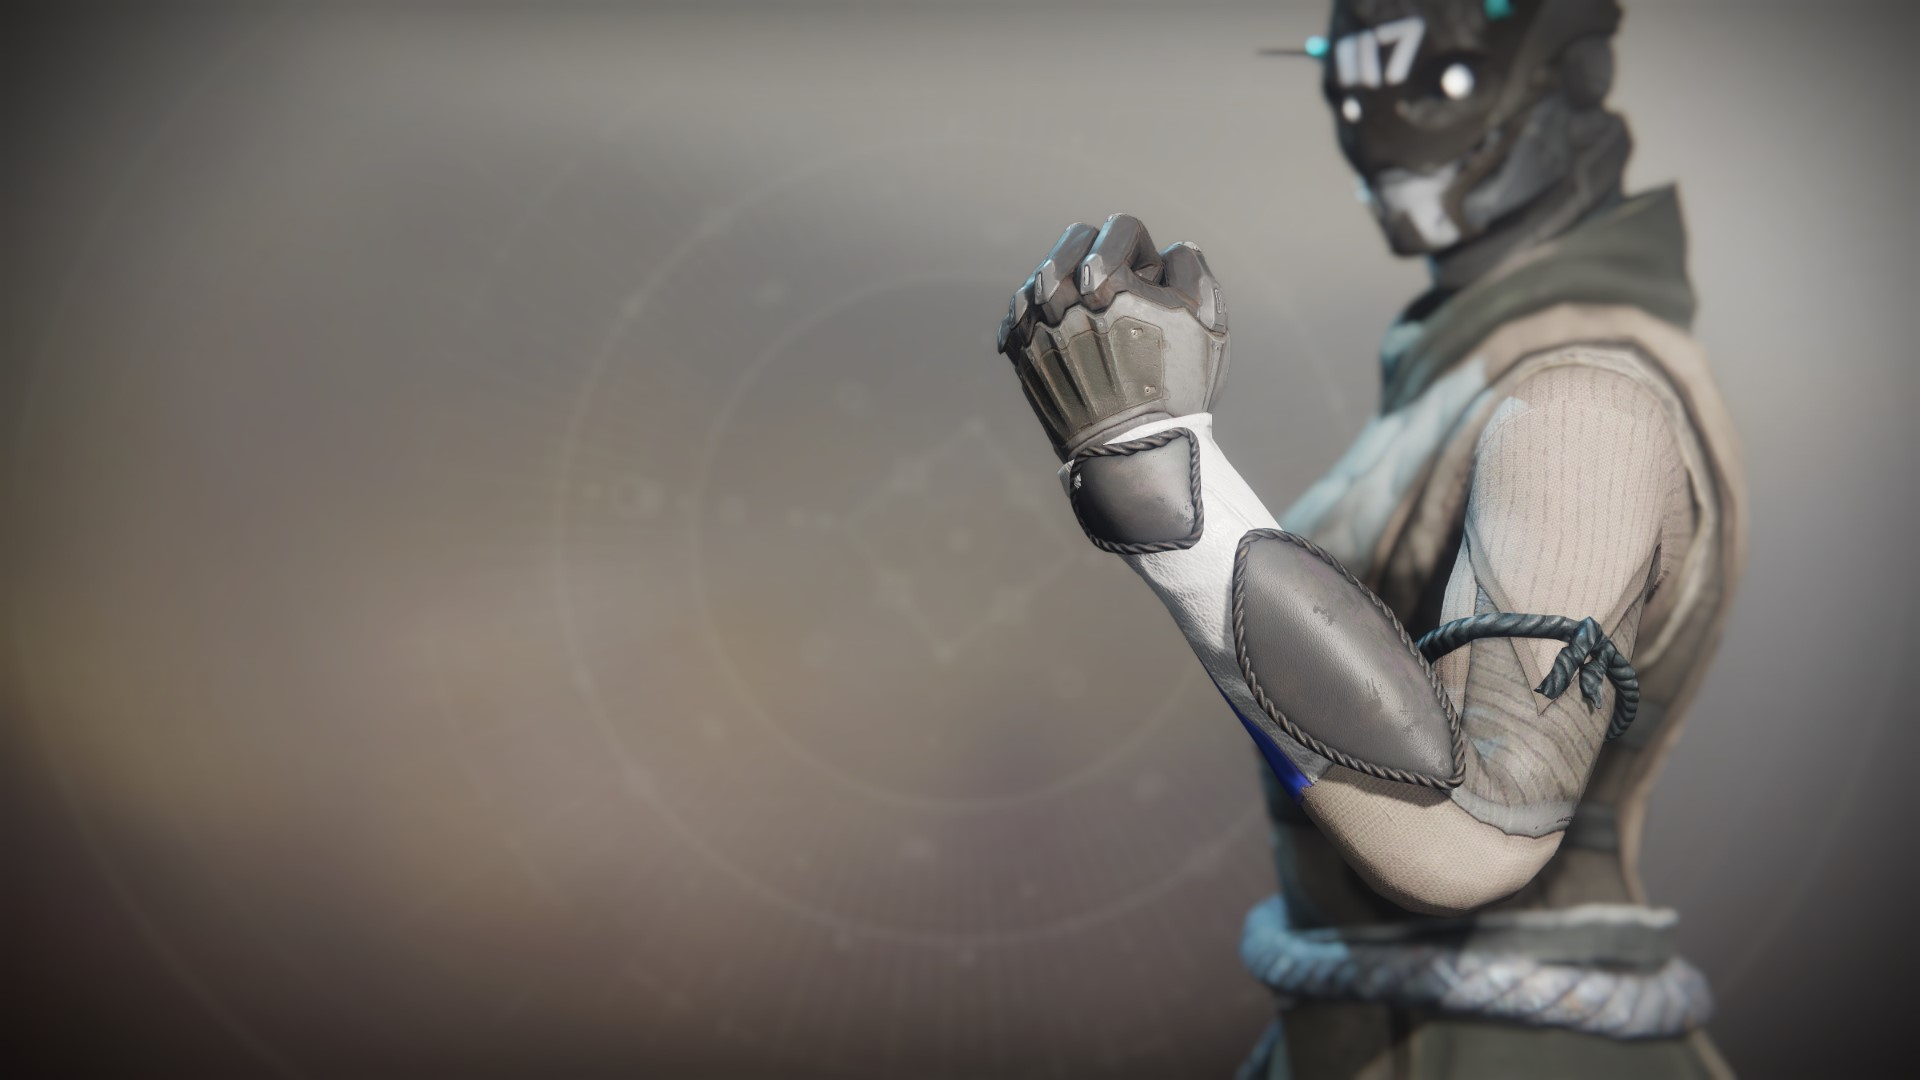 An in-game render of the Insight Vikti Gloves.